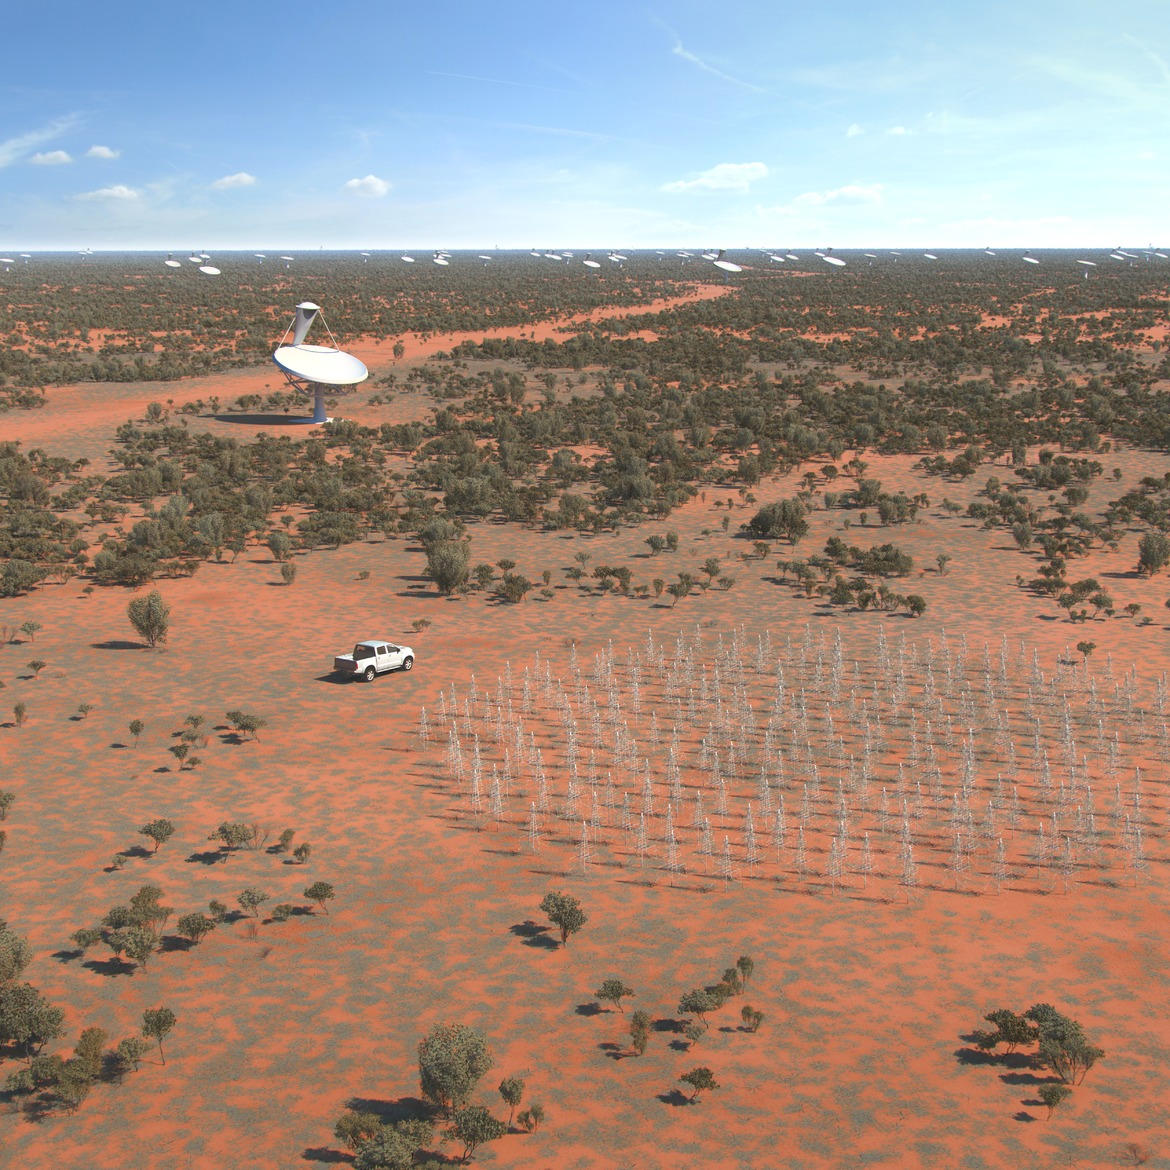 An artist's rendition of the SKA-Low Frequency Aperture Array (LFAA) and survey telescopes in Australia. The SKA survey telescope will have 96 dishes, including 36 antennas of CSIRO's Australian SKA Pathfinder. Credit: SKA Organisation